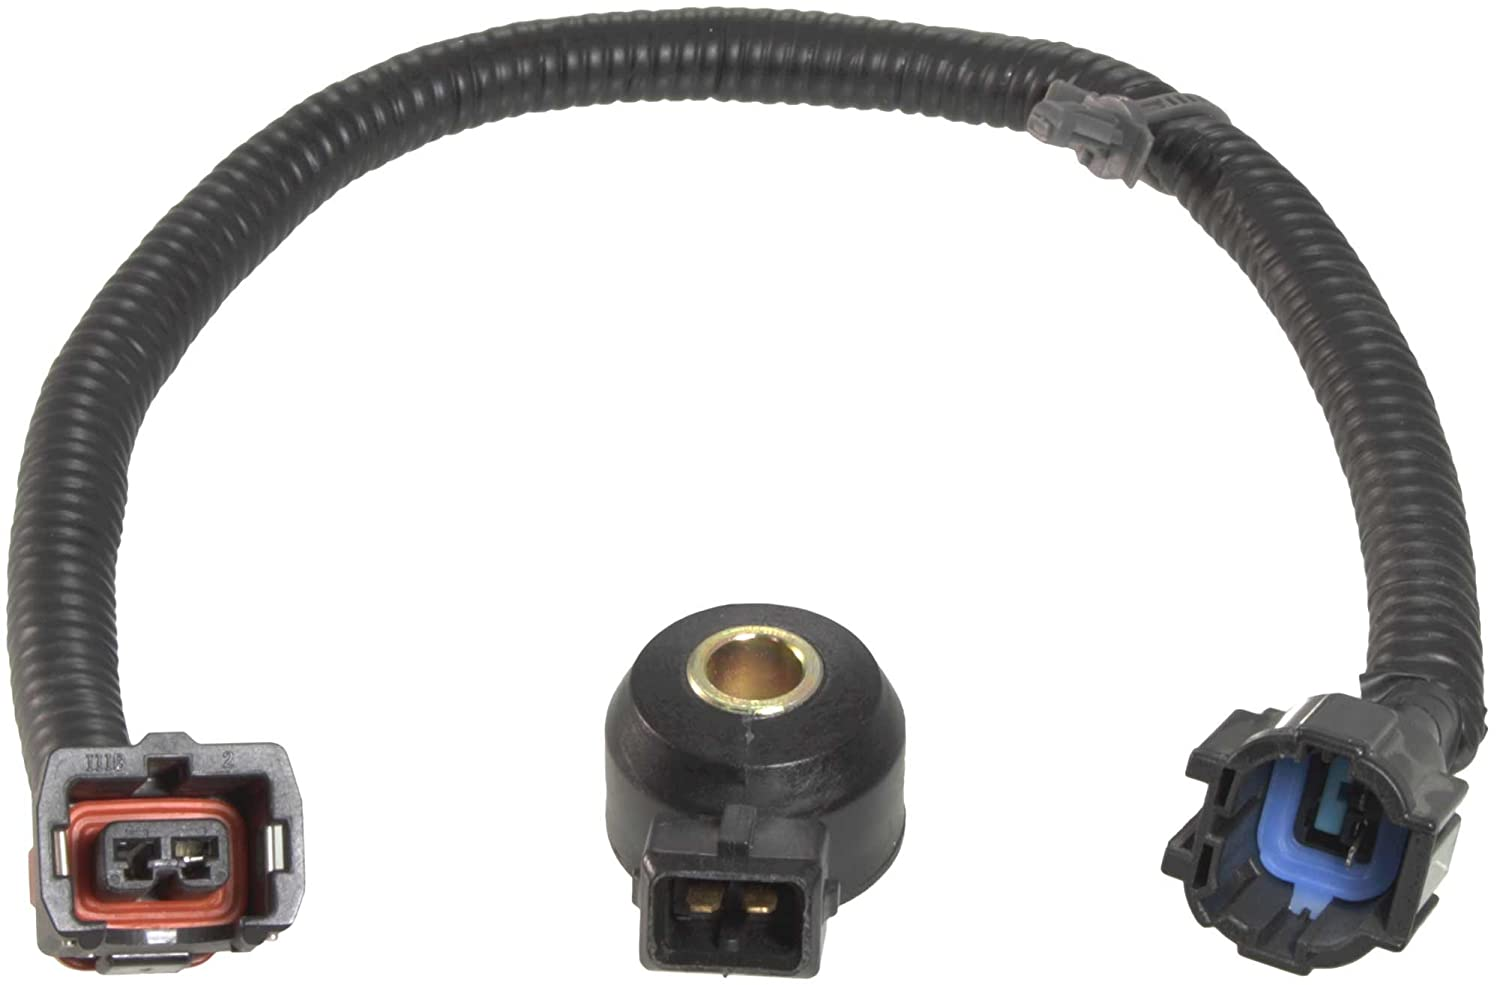 Amazon.com: APDTY 028252 Knock Sensor With New Wiring Harness Pigtail  Connector Fits Select 1990-2002 Nissan or Infiniti Mode ls Listed In The  Compatibility ...